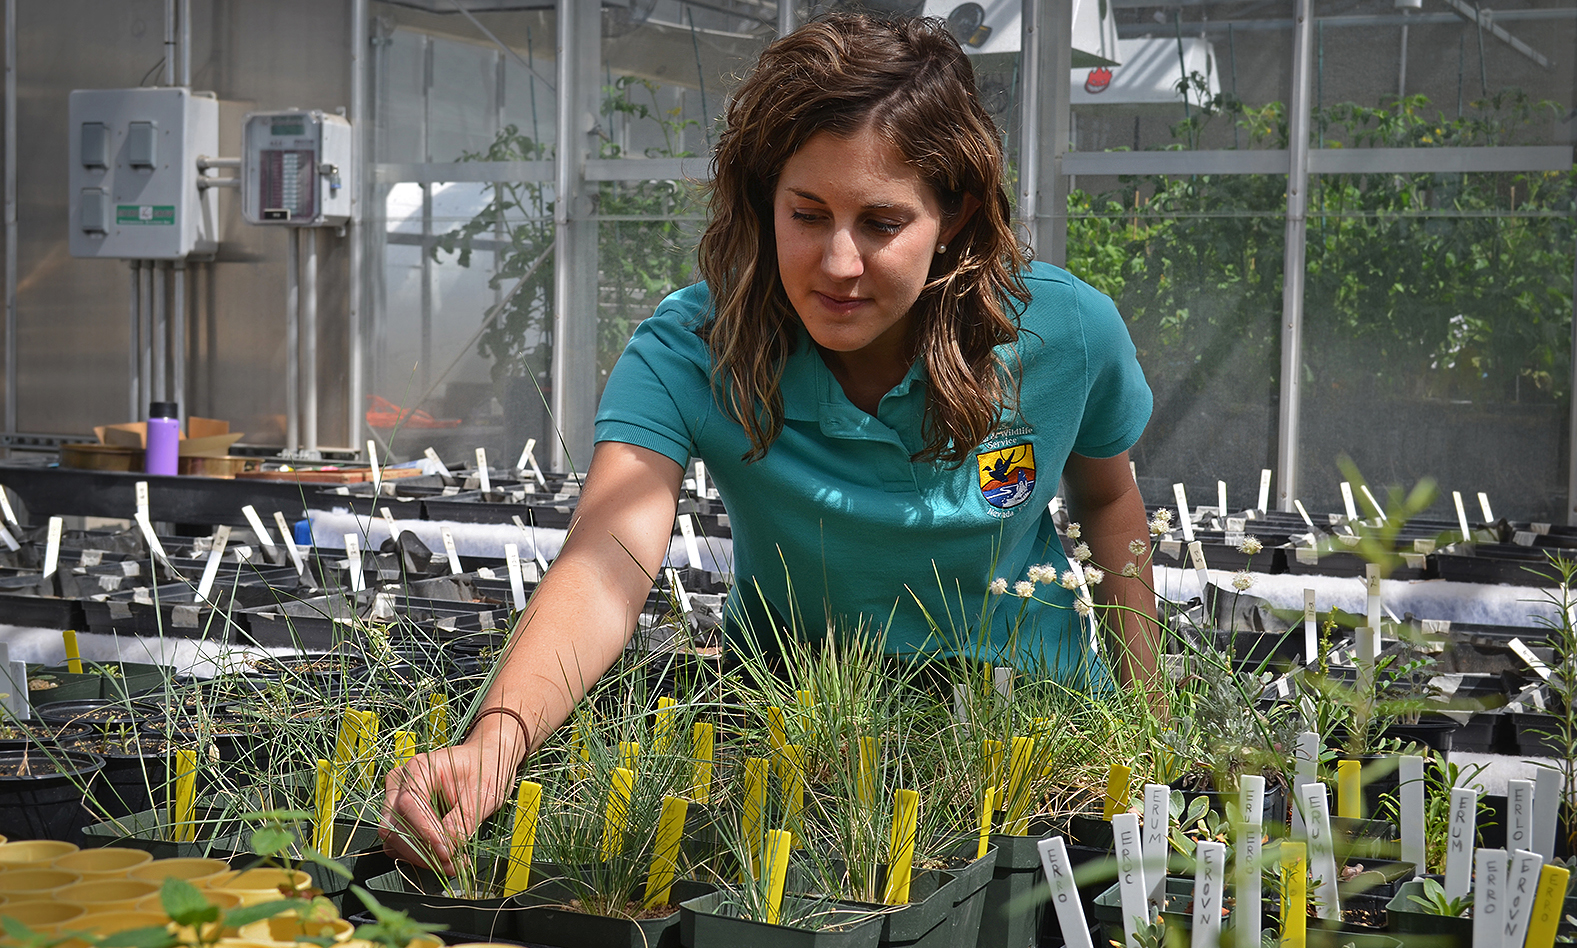 Sarah Kulpa, a US Fish and Wildlife Service botanist, works with native plants in the University of Nevada-Reno greenhouse complex. Credit: Dan Hottle/USFWS